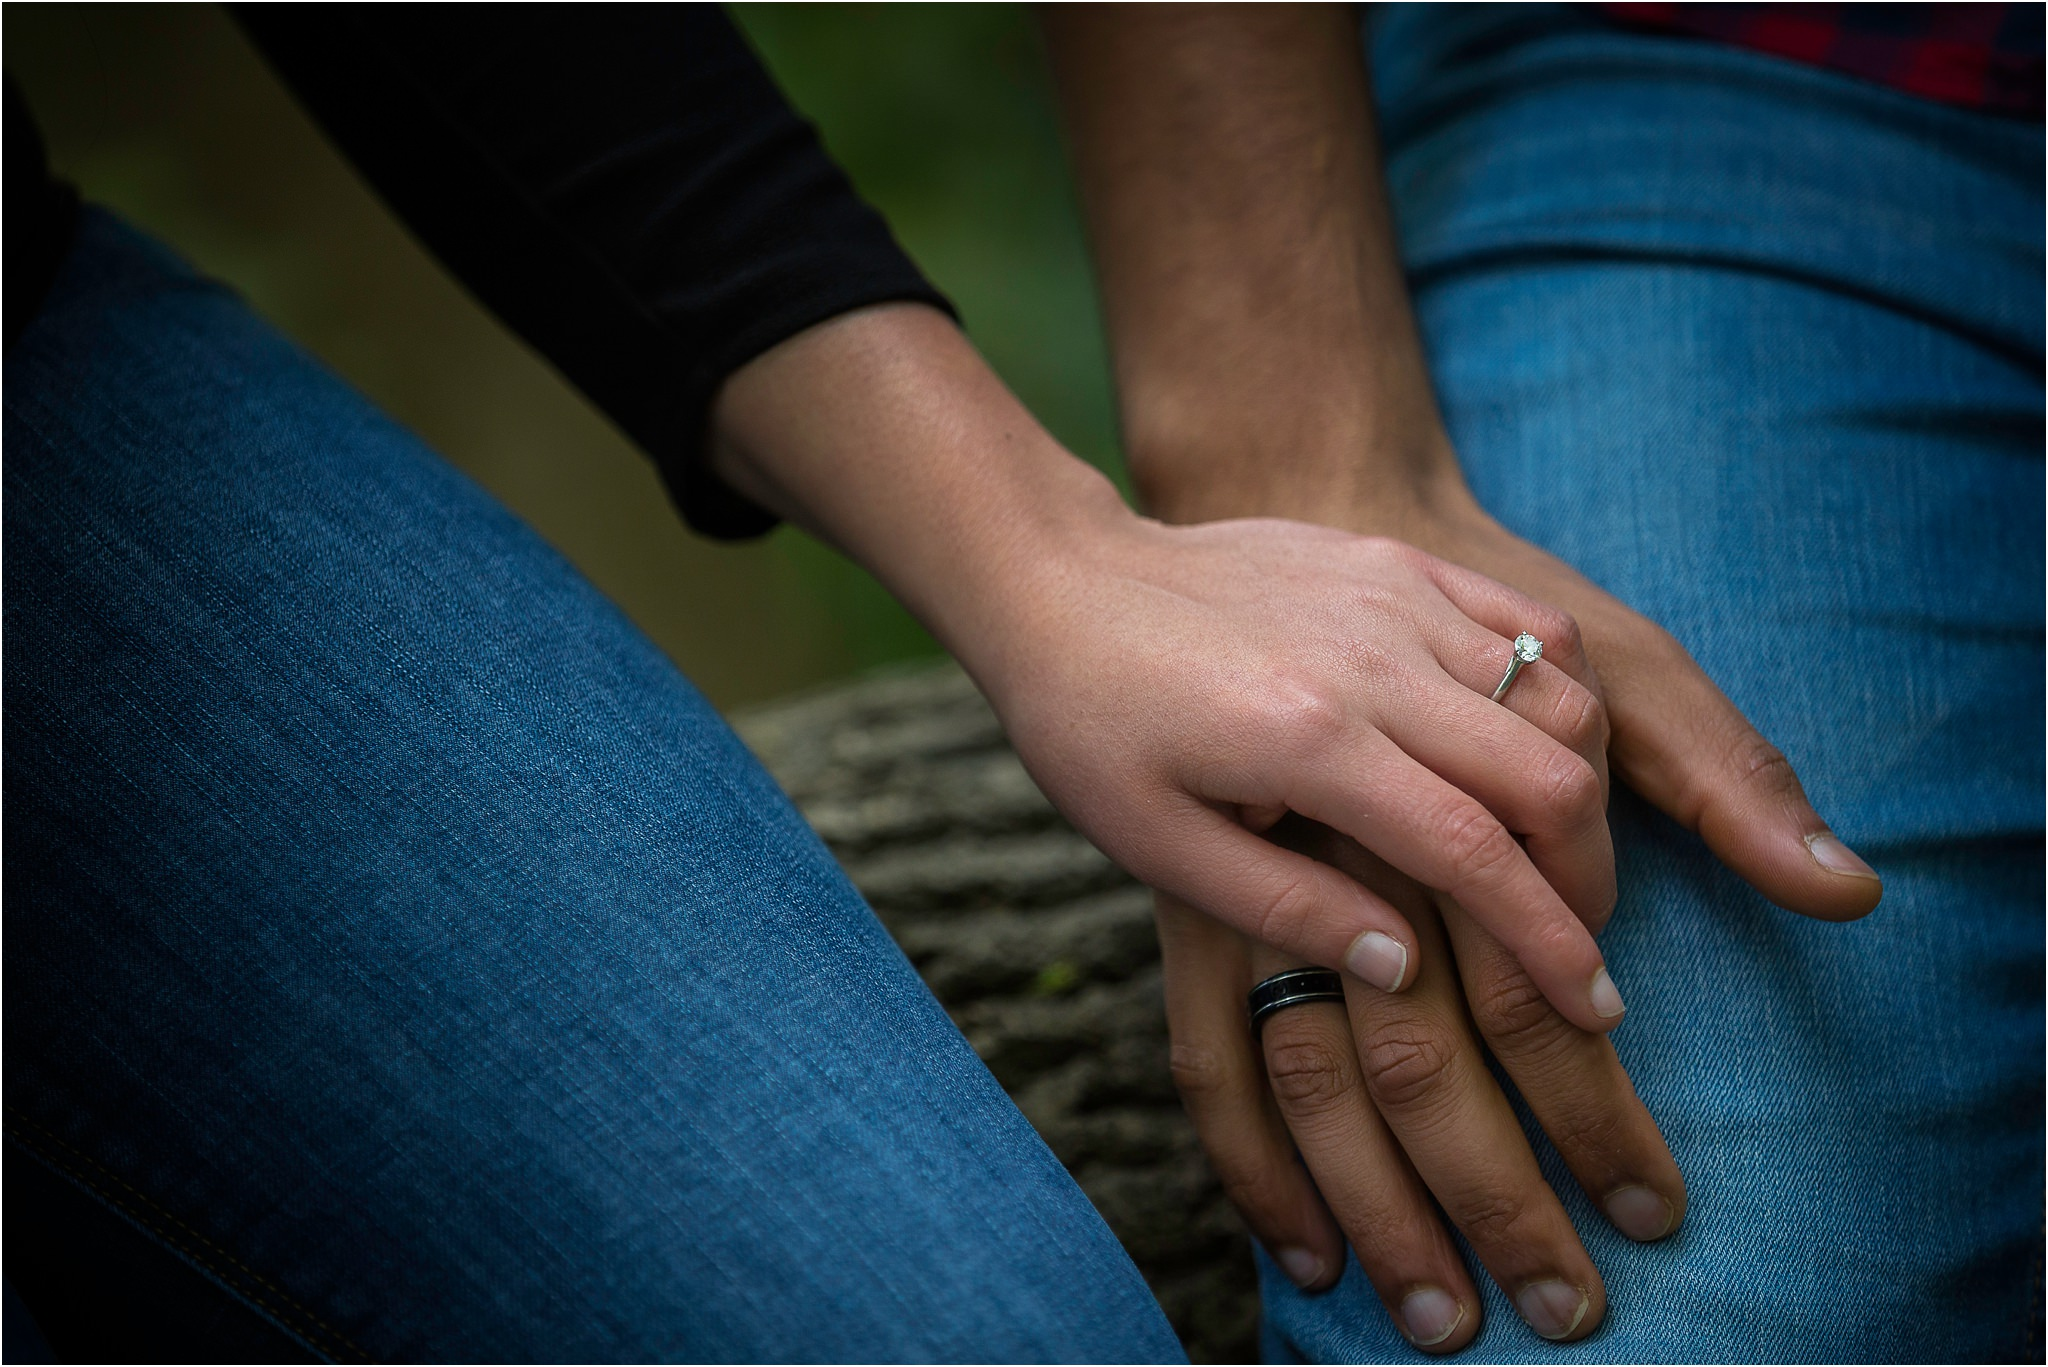 Close up of a couples hands. The lady has her engagement ring on show, whilst the mans hand is underneath.